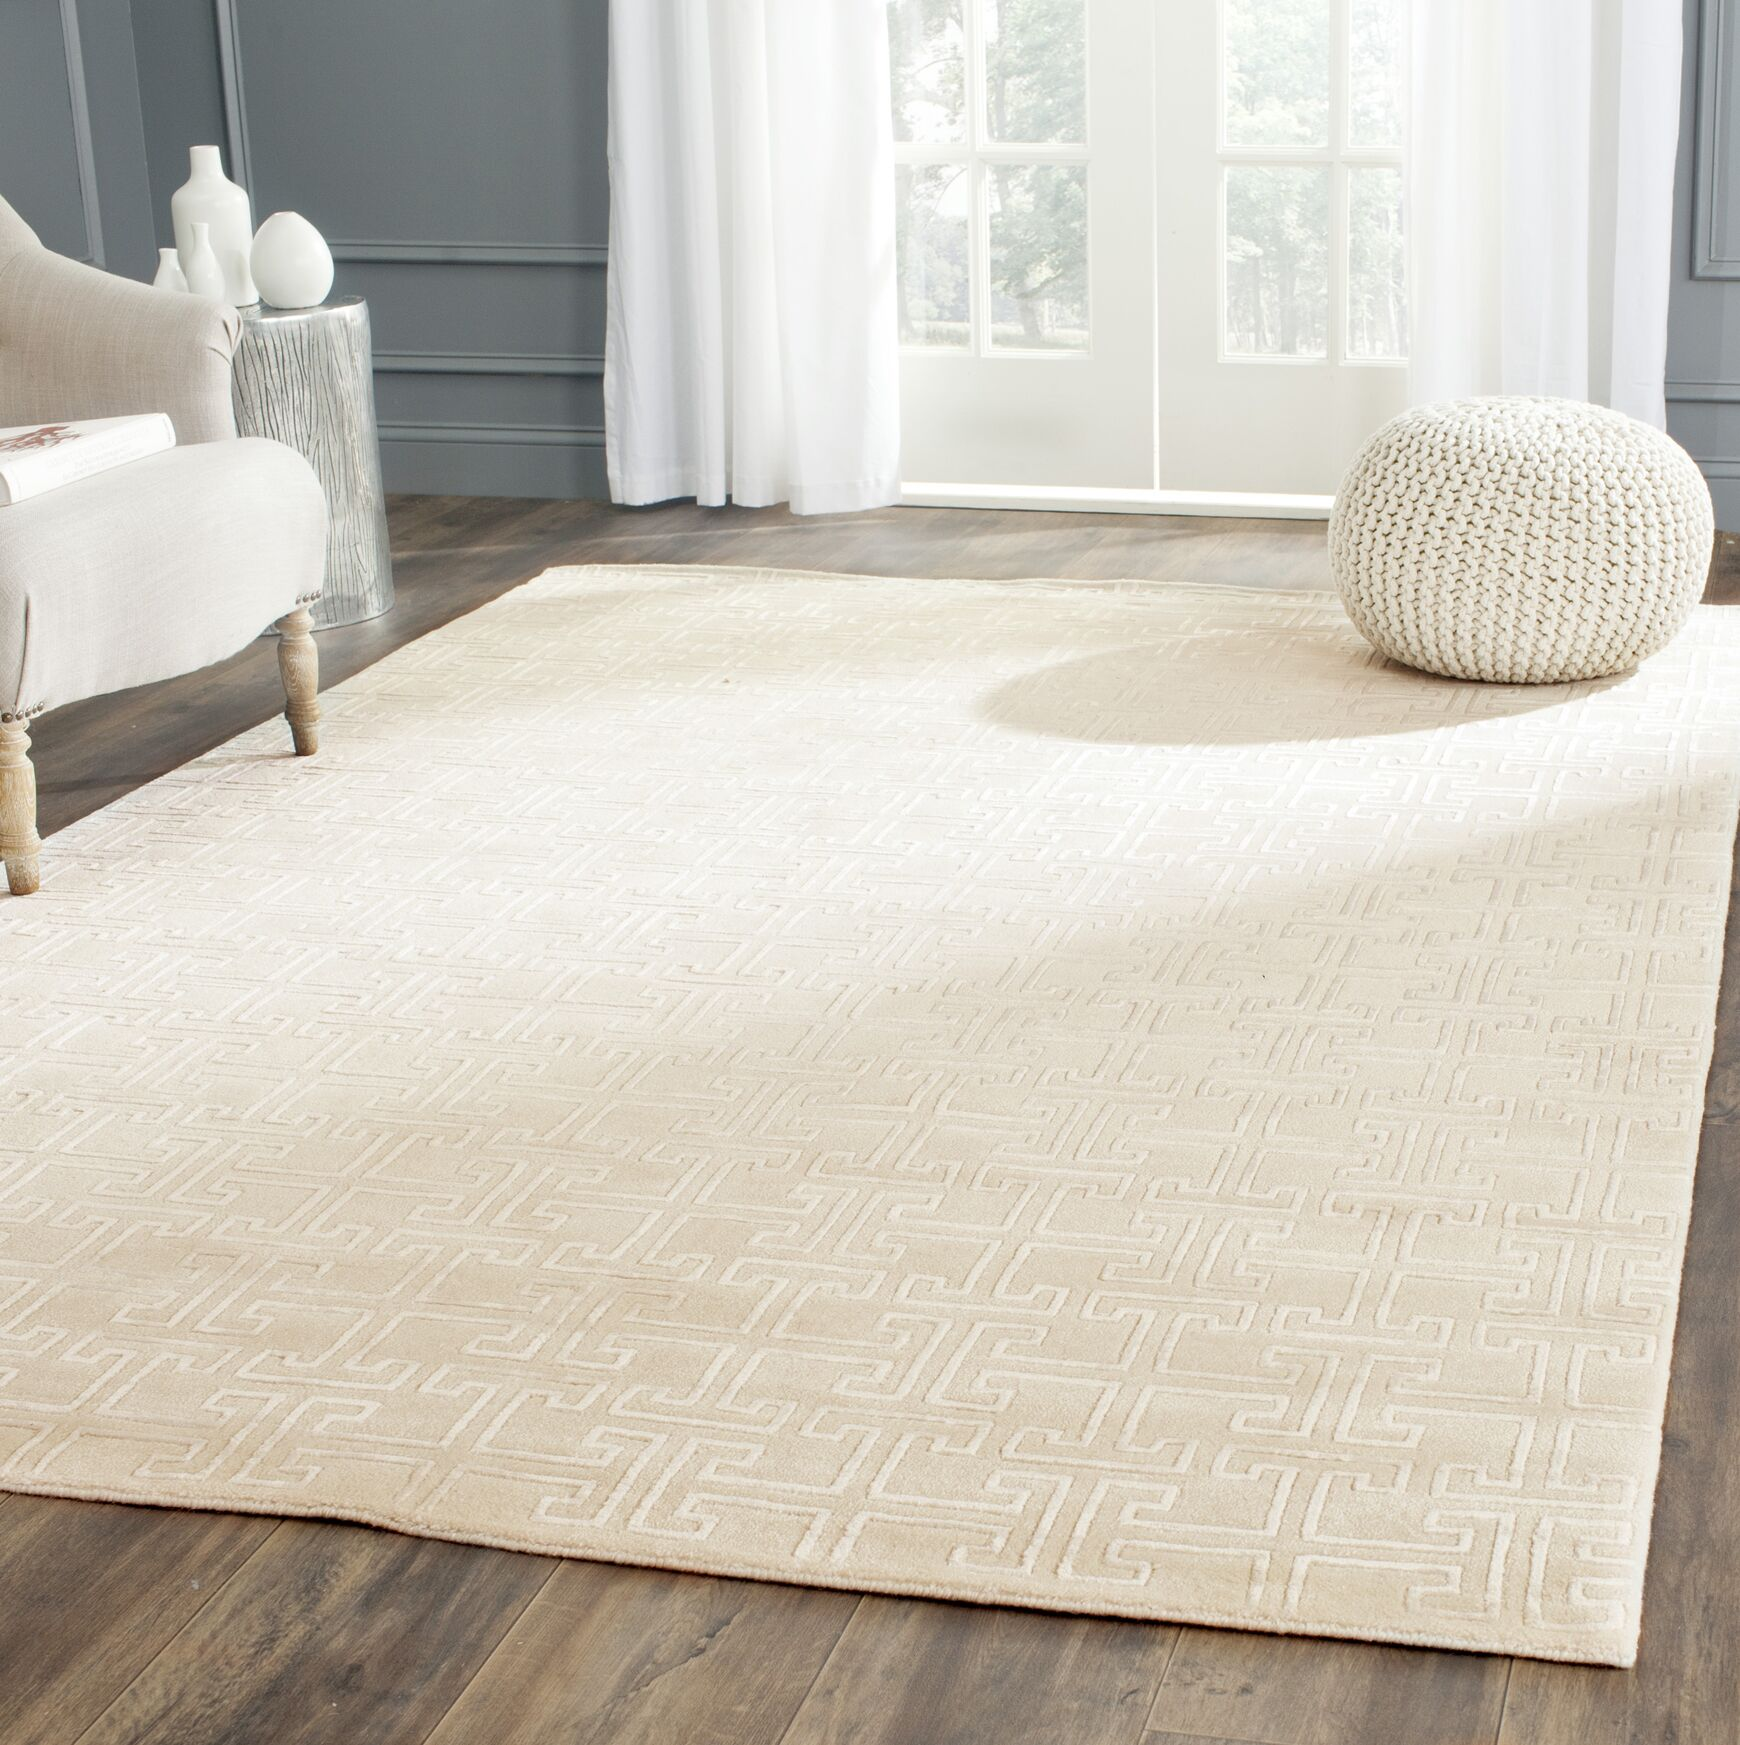 Fogg Tibetan Hand Knotted Ivory/White Area Rug Rug Size: Rectangle 10' x 14'